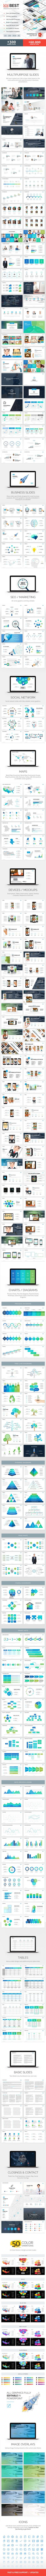 Best PowerPoint Presentation Template #powerpoint #design Download: http://graphicriver.net/item/best-powerpoint-presentation-template/11499607?ref=ksioks